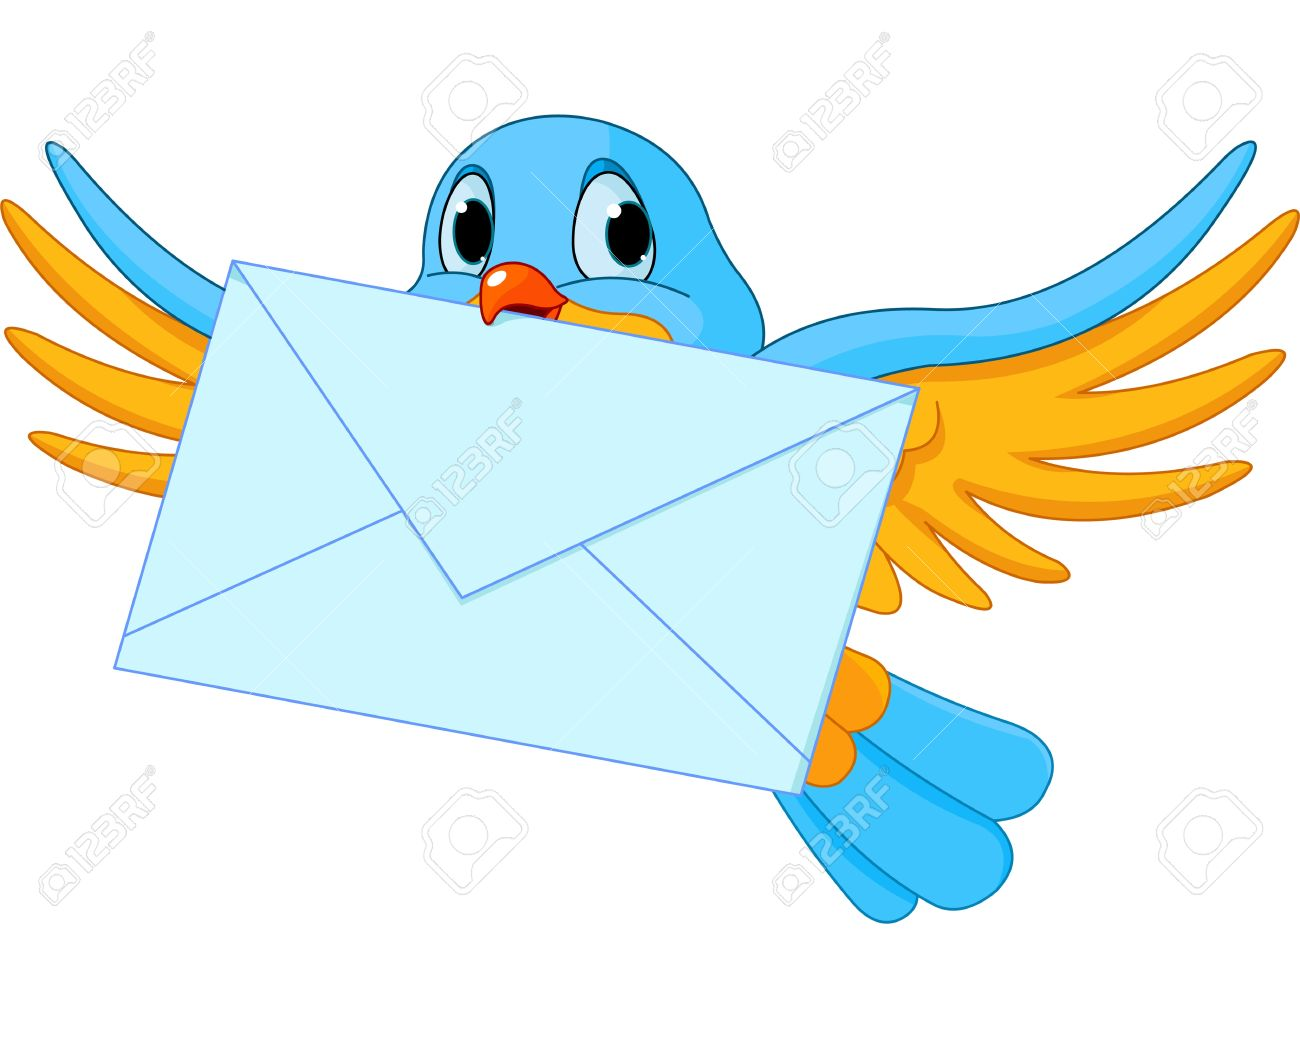 Mail letter clipart.